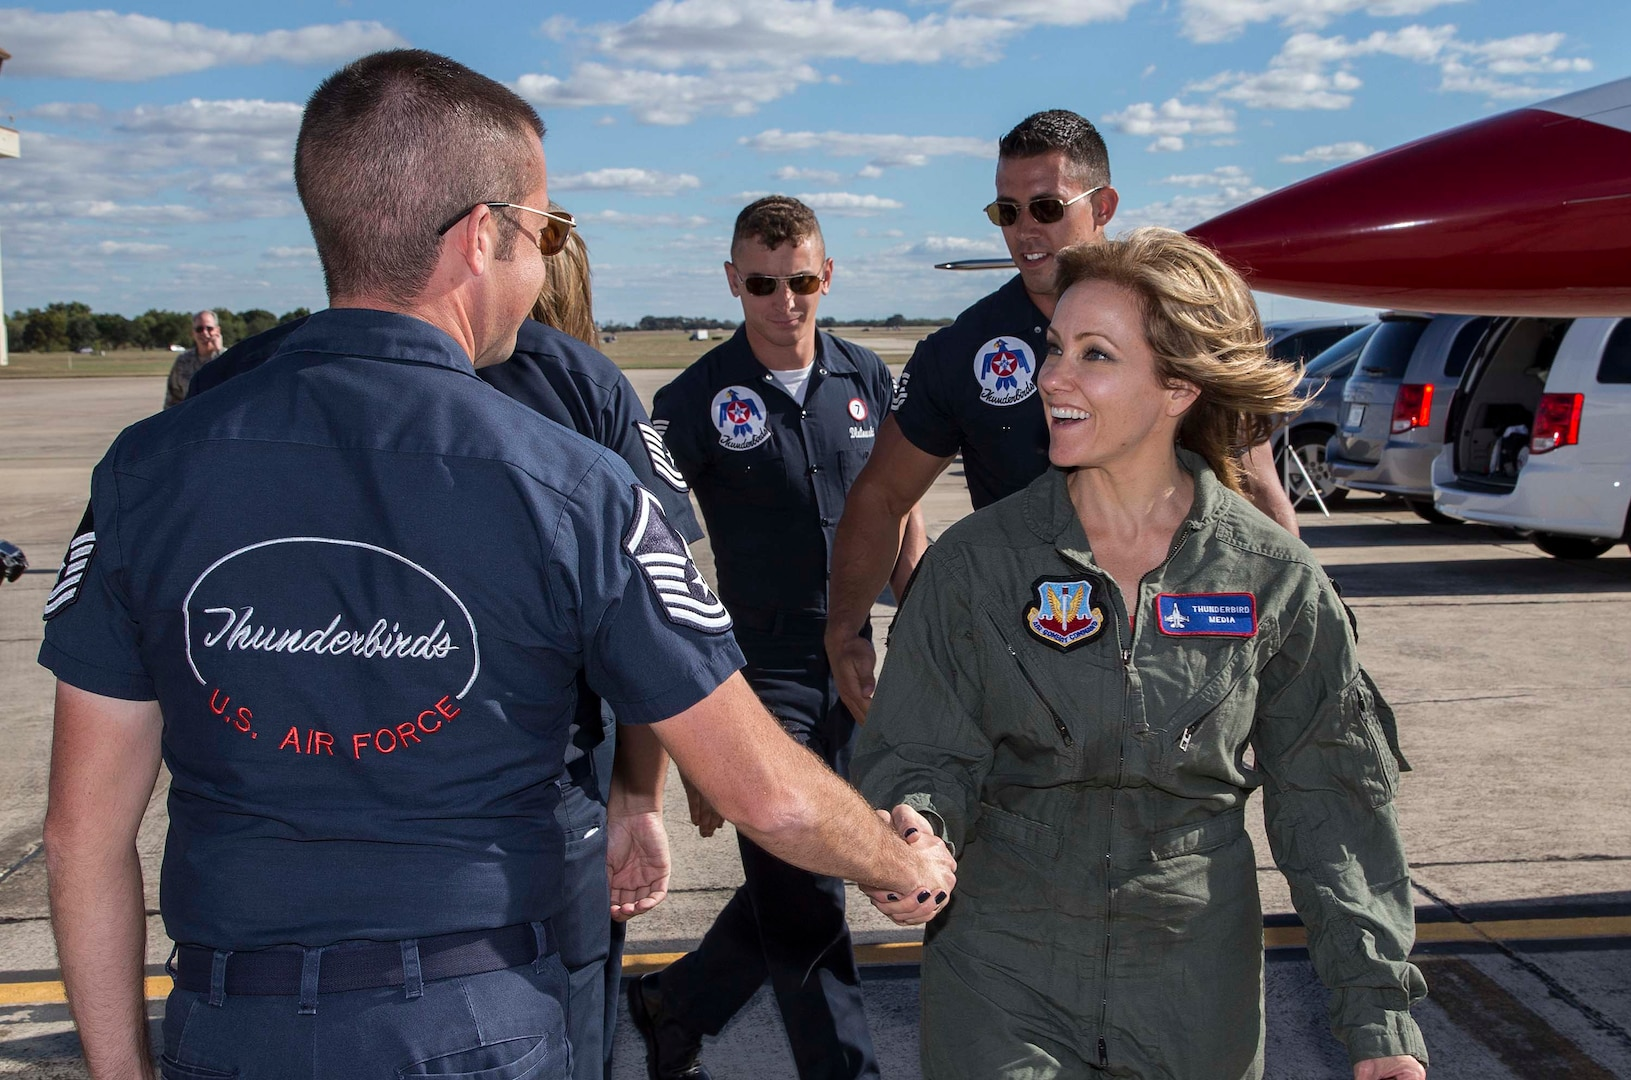 """Delaine Mathieu, News 4 San Antonio co-anchor, is greeted by U.S. Air Force Air Demonstration Squadron """"Thunderbirds"""" team members prior to a media flight Oct. 26, 2015 at Joint Base San Antonio-Randolph, Texas. The Thunderbirds are performing in the 2015 Air Show and Open House to be held at JBSA-Randolph Oct. 31 and Nov. 1. (U.S. Air Force photo by Johnny Saldivar/Released)"""